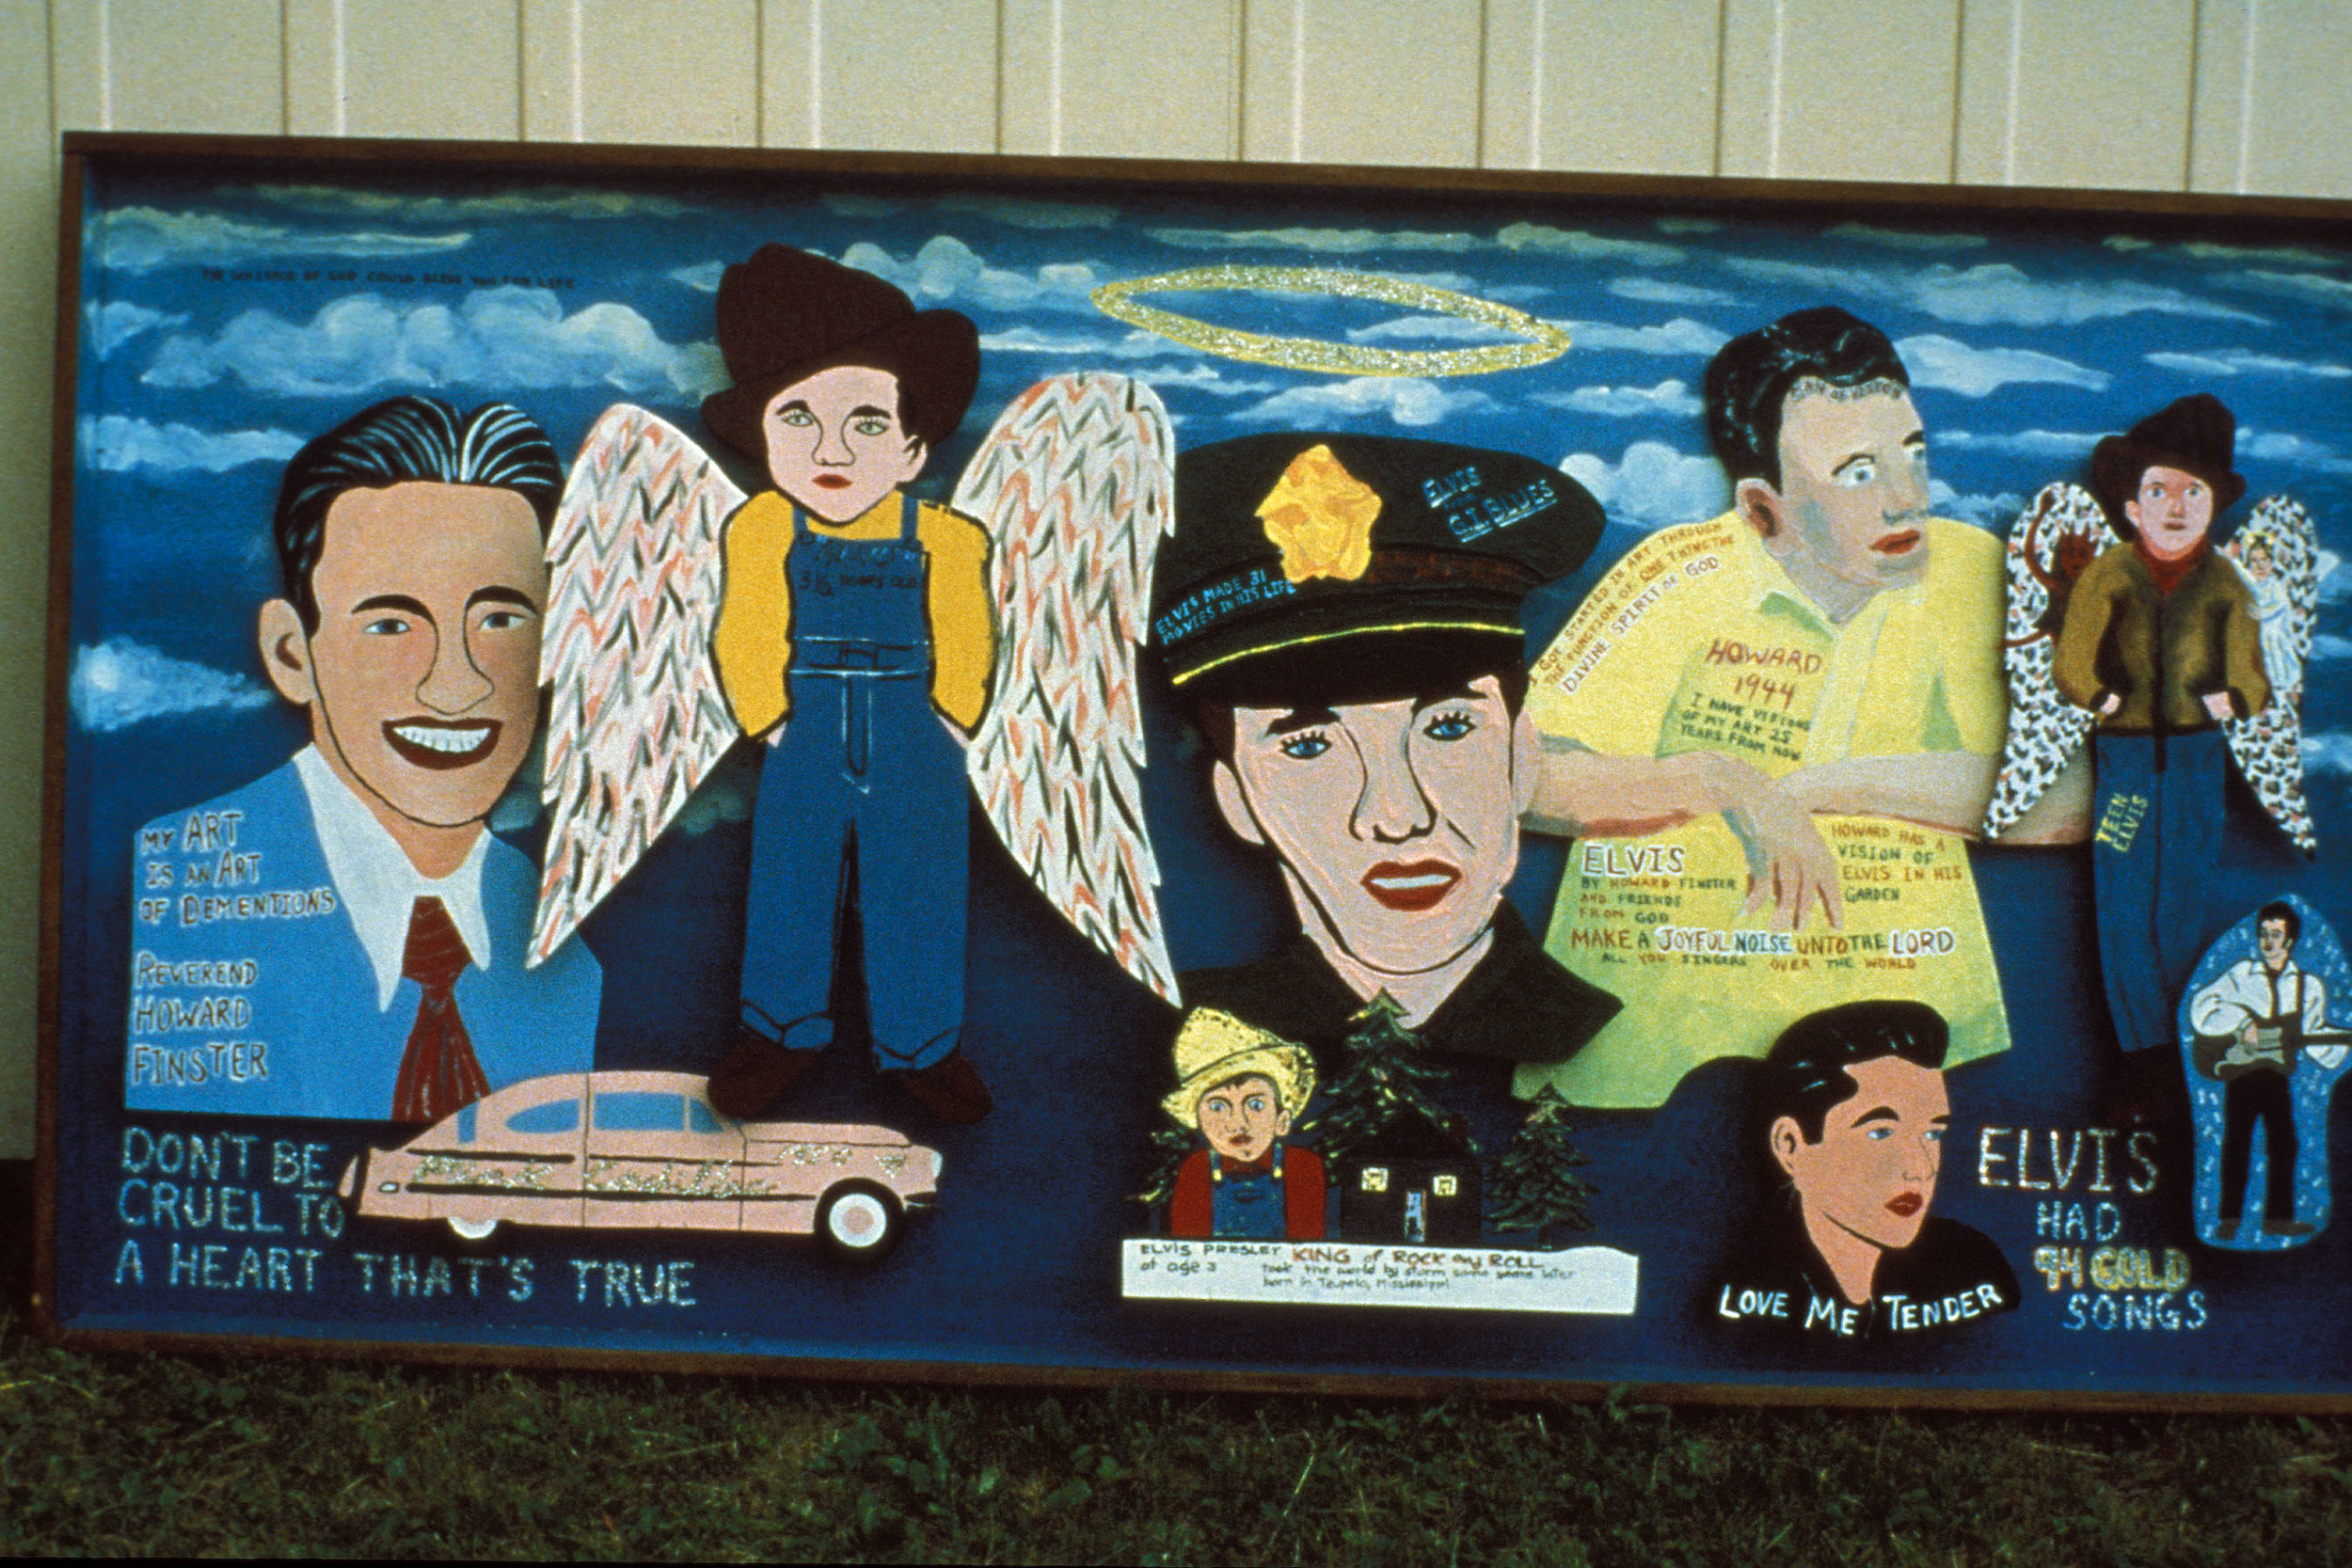 """Elvis Had 94 Gold Songs, 1985, oil paint on wood, assemblage of """"Dementions,"""" 41 x 82 x 4.5 in. (104.14 x 208.28 x 12.06 cm)"""